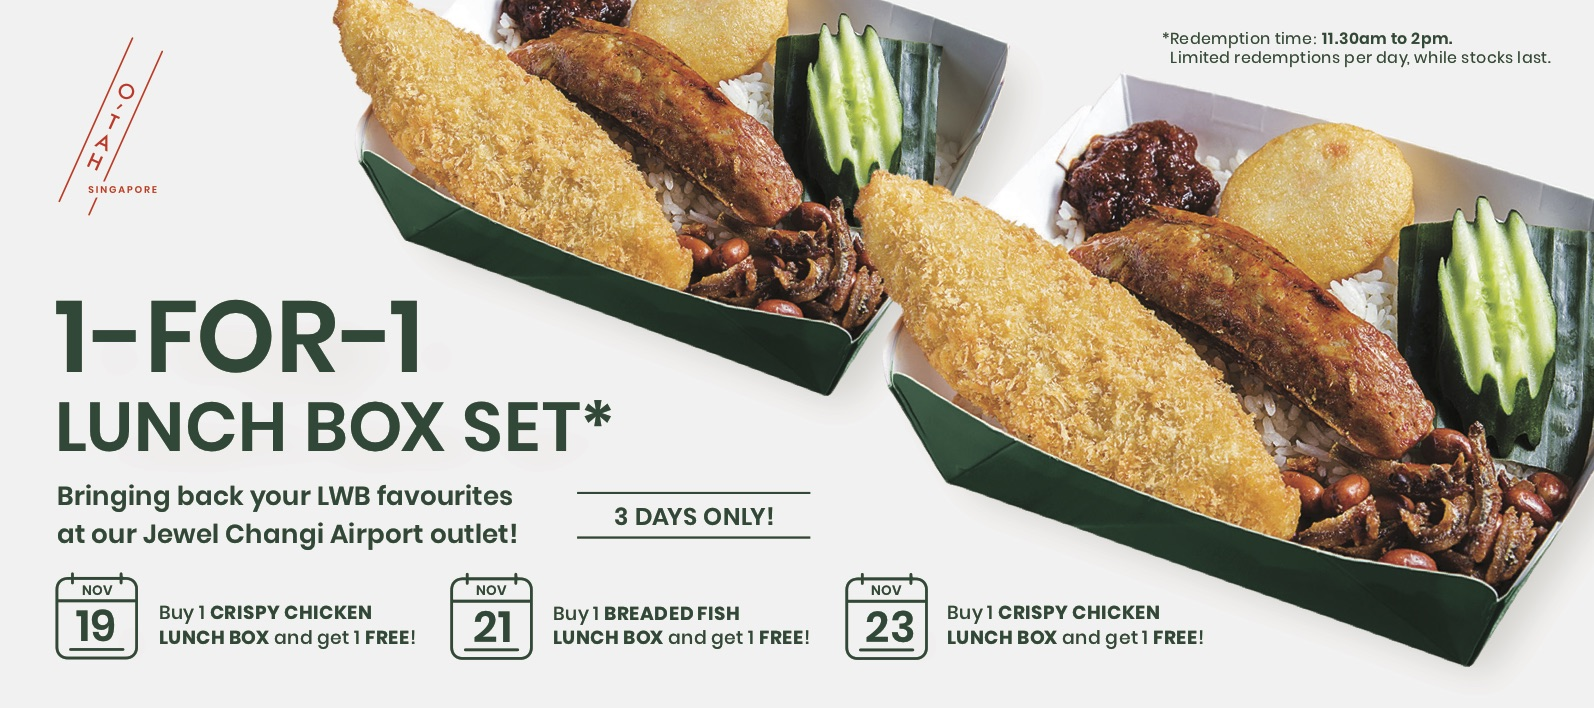 Lee Wee & Brothers Singapore 1-for-1 Deal on Selected Lunch Boxes at Jewel Changi Airport Outlet 19-23 Nov 2019 | Why Not Deals 1 & Promotions